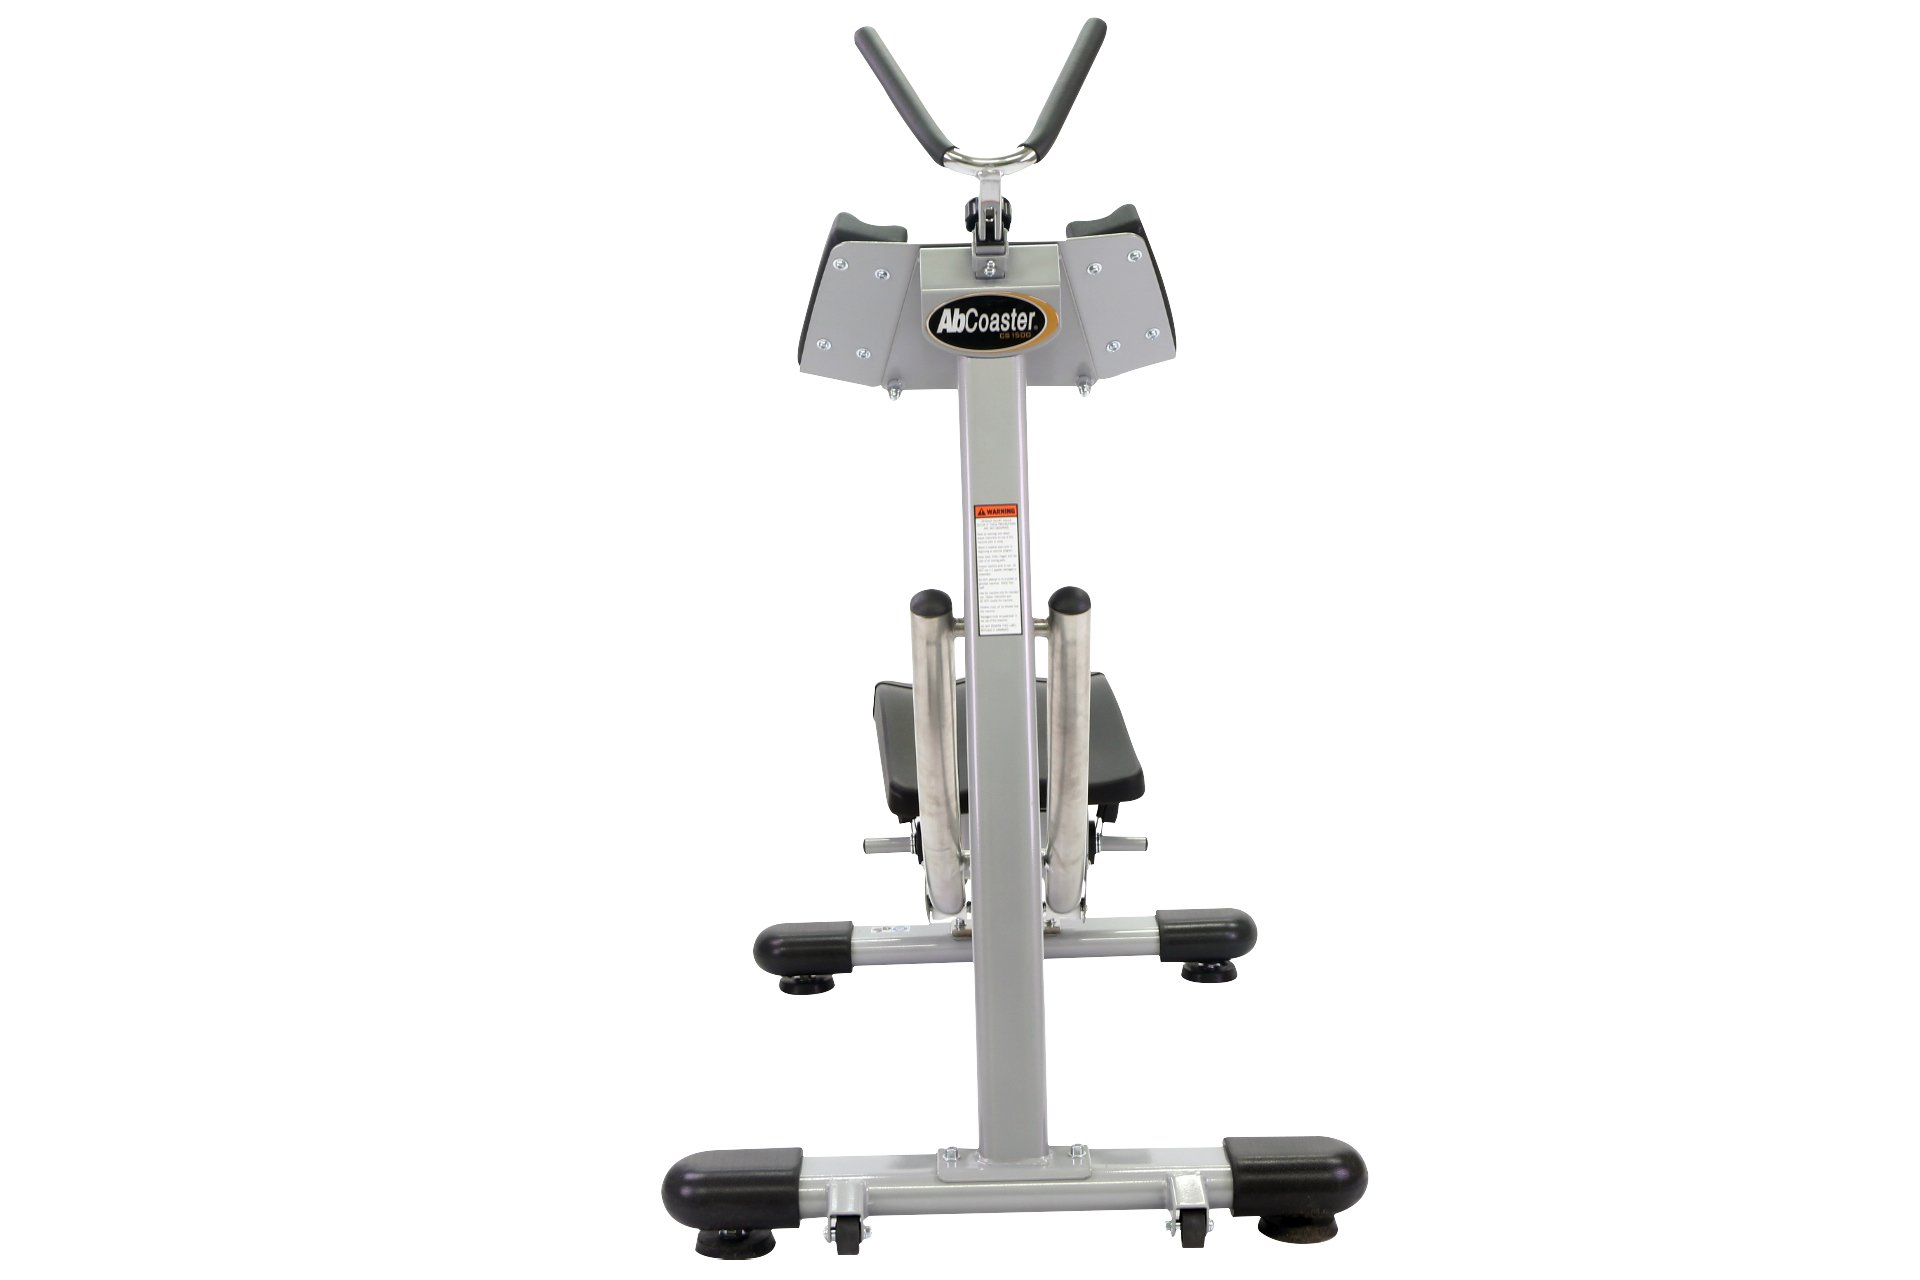 Ab Coaster CS1500, Ultimate Ab Workout, Six Pack Exercise Machine For Home As Seen On TV by Ab Coaster (Image #6)